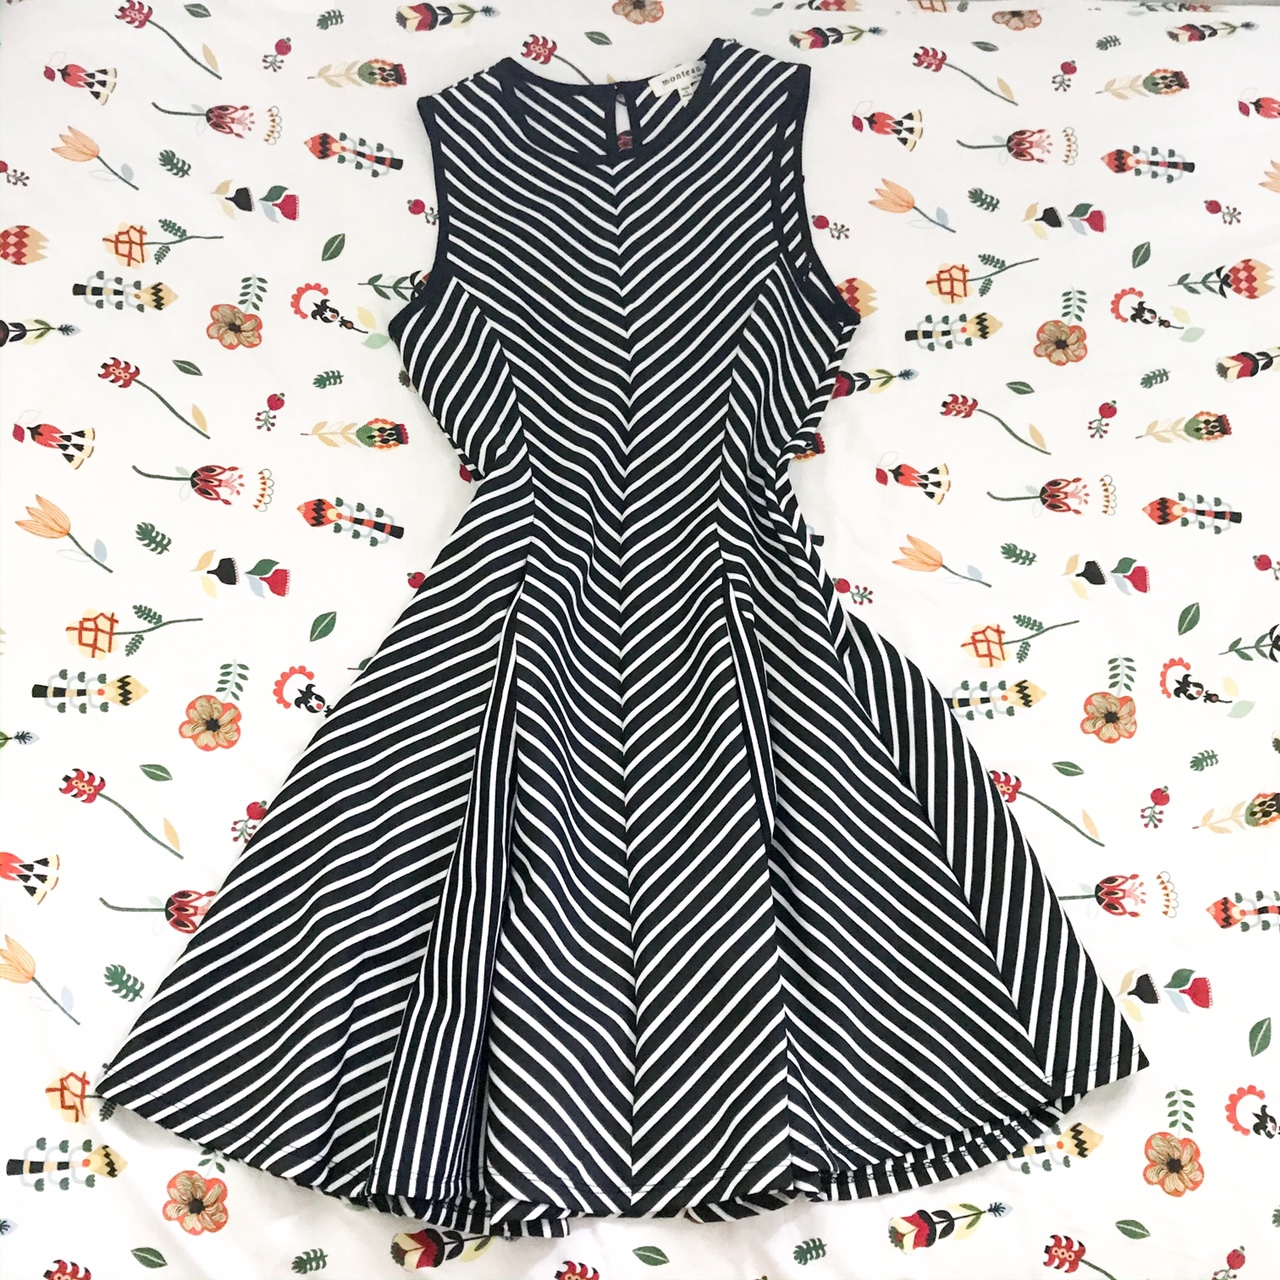 Product Image 1 - Super flattering black and white